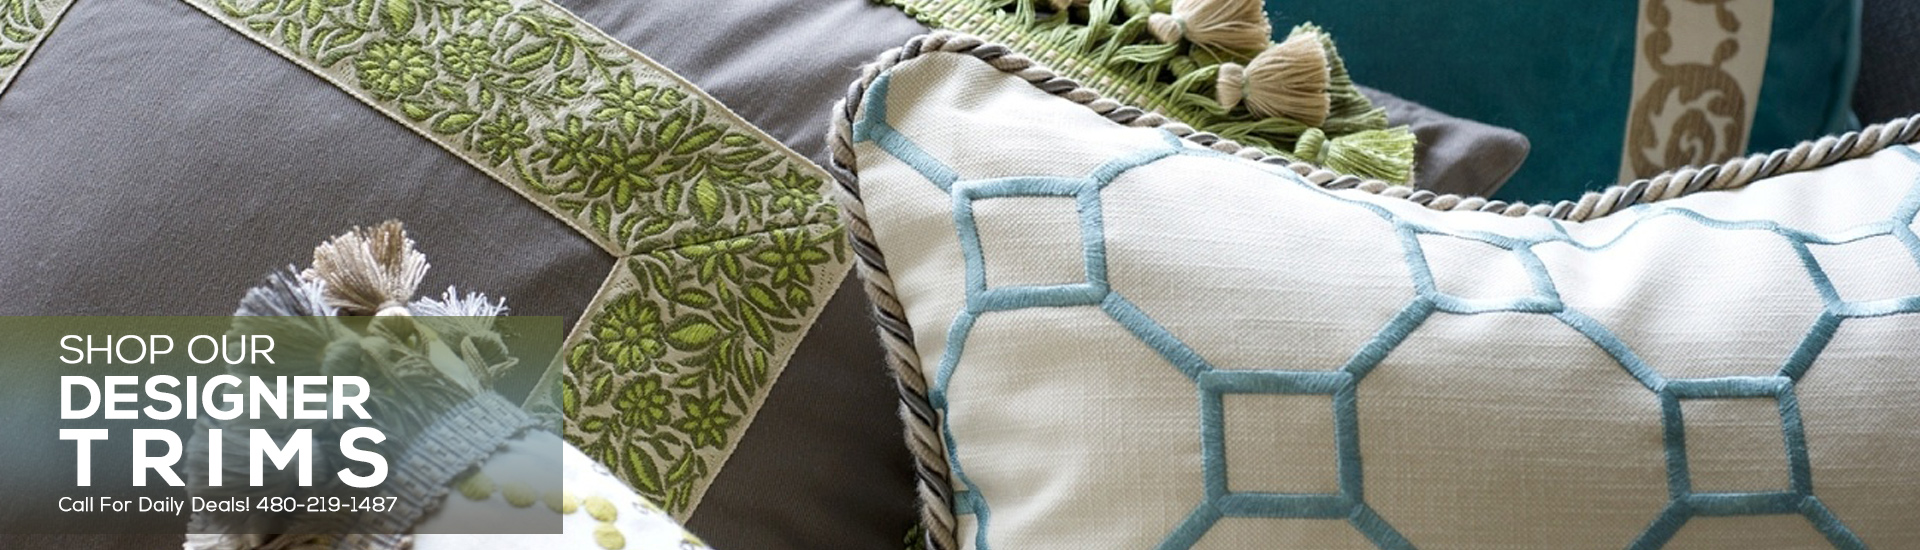 Trim Can Add That Perfect Finishing Touch To Any Quilting Home Decor Or Upholstered Piece Window Decoration From The Simplest Cord Most